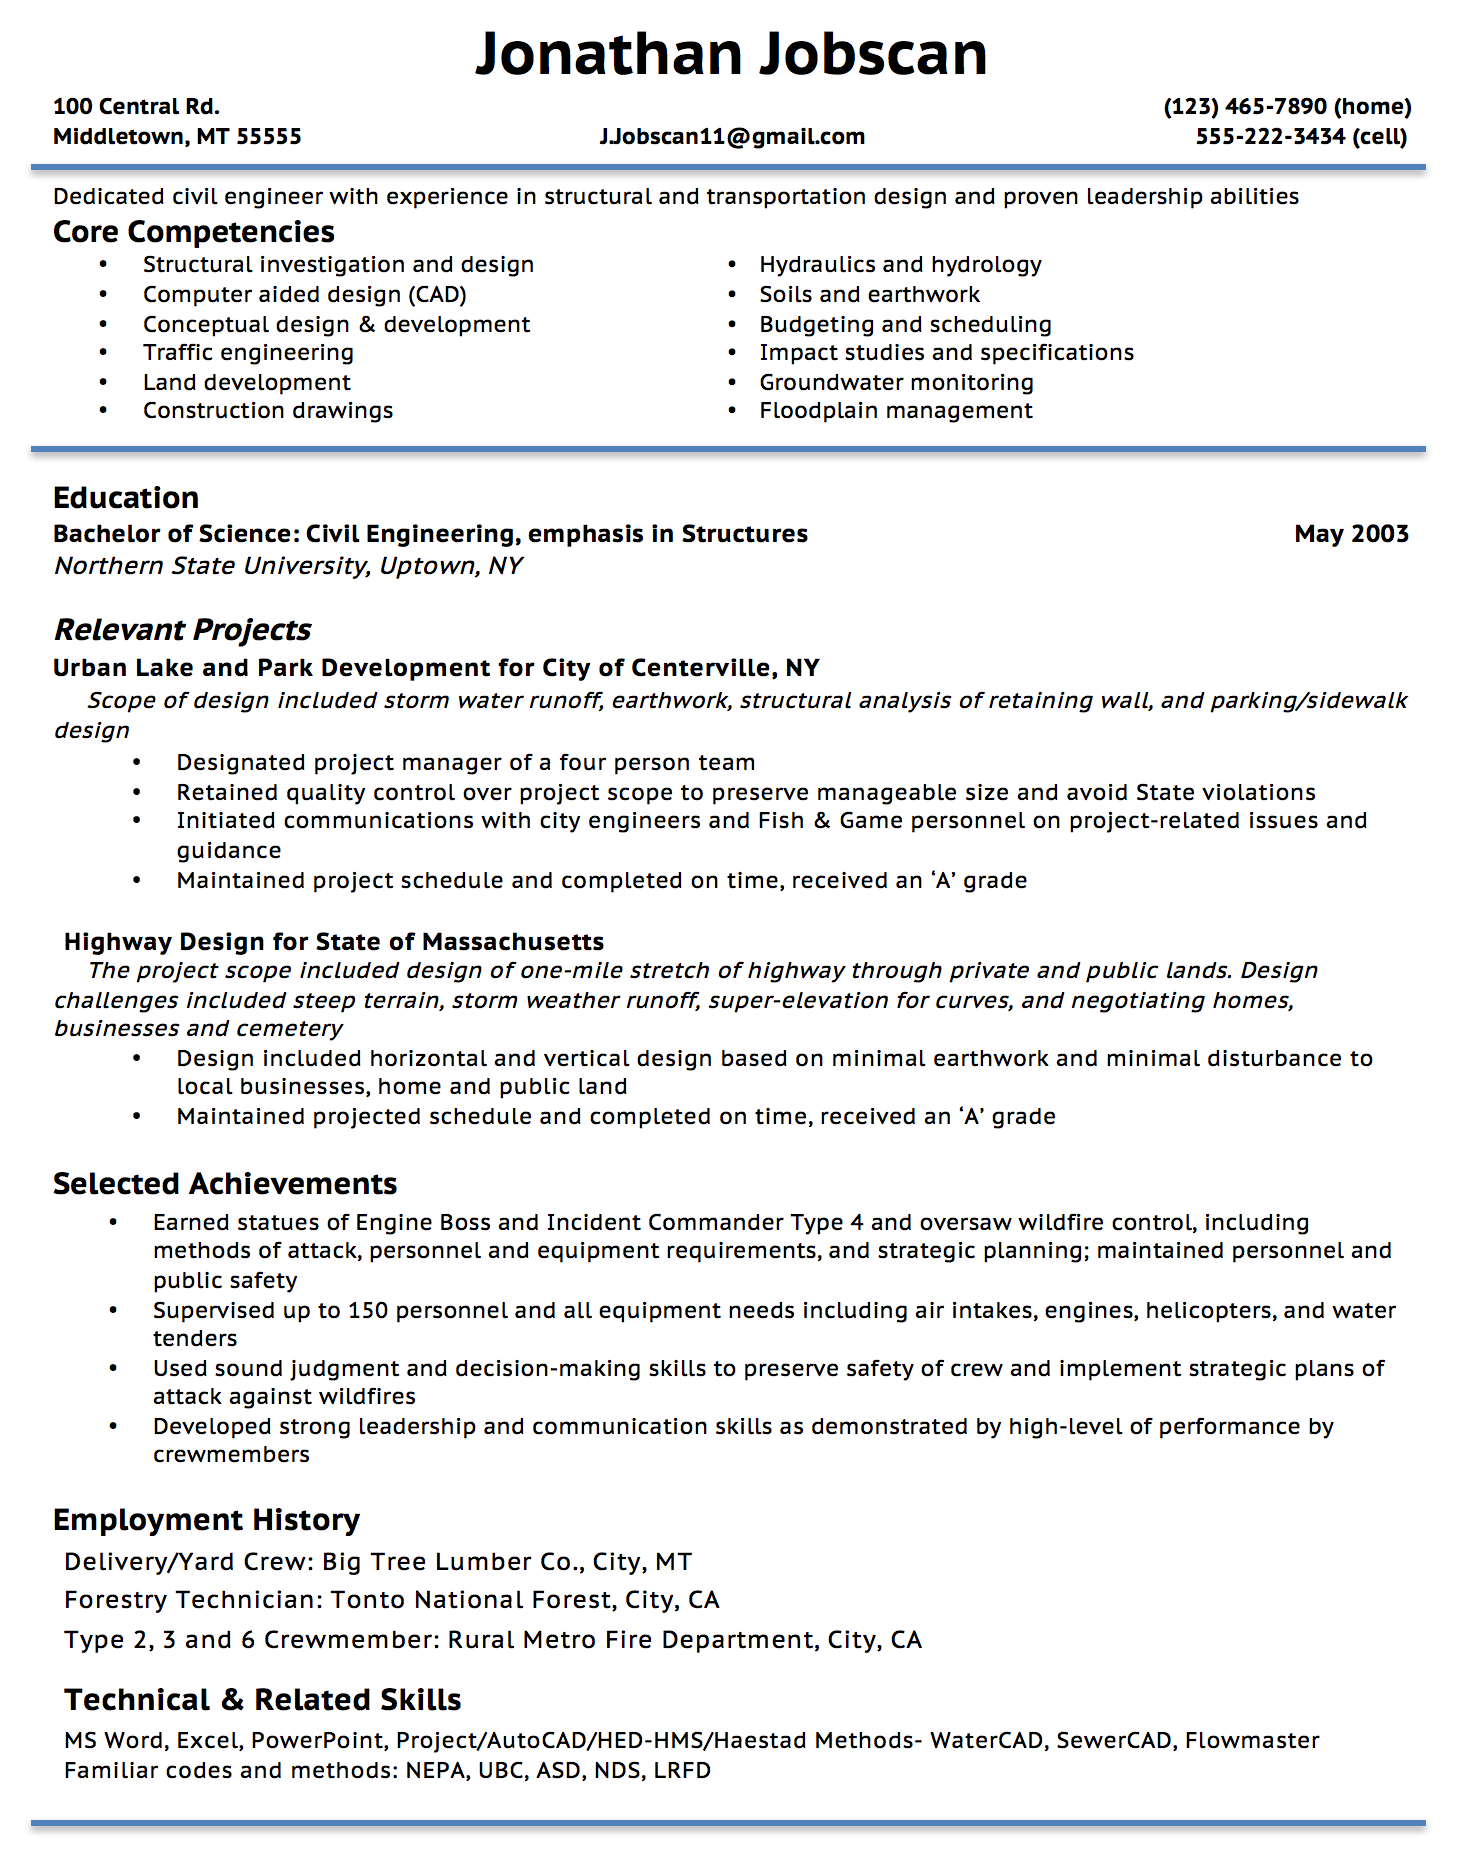 Picnictoimpeachus  Picturesque Resume Writing Guide  Jobscan With Remarkable Example Of A Functional Resume Format With Beauteous Experienced Teacher Resume Also Business Administration Resume In Addition Human Resources Generalist Resume And Logistics Manager Resume As Well As Areas Of Expertise Resume Additionally Cover Letter With Resume From Jobscanco With Picnictoimpeachus  Remarkable Resume Writing Guide  Jobscan With Beauteous Example Of A Functional Resume Format And Picturesque Experienced Teacher Resume Also Business Administration Resume In Addition Human Resources Generalist Resume From Jobscanco